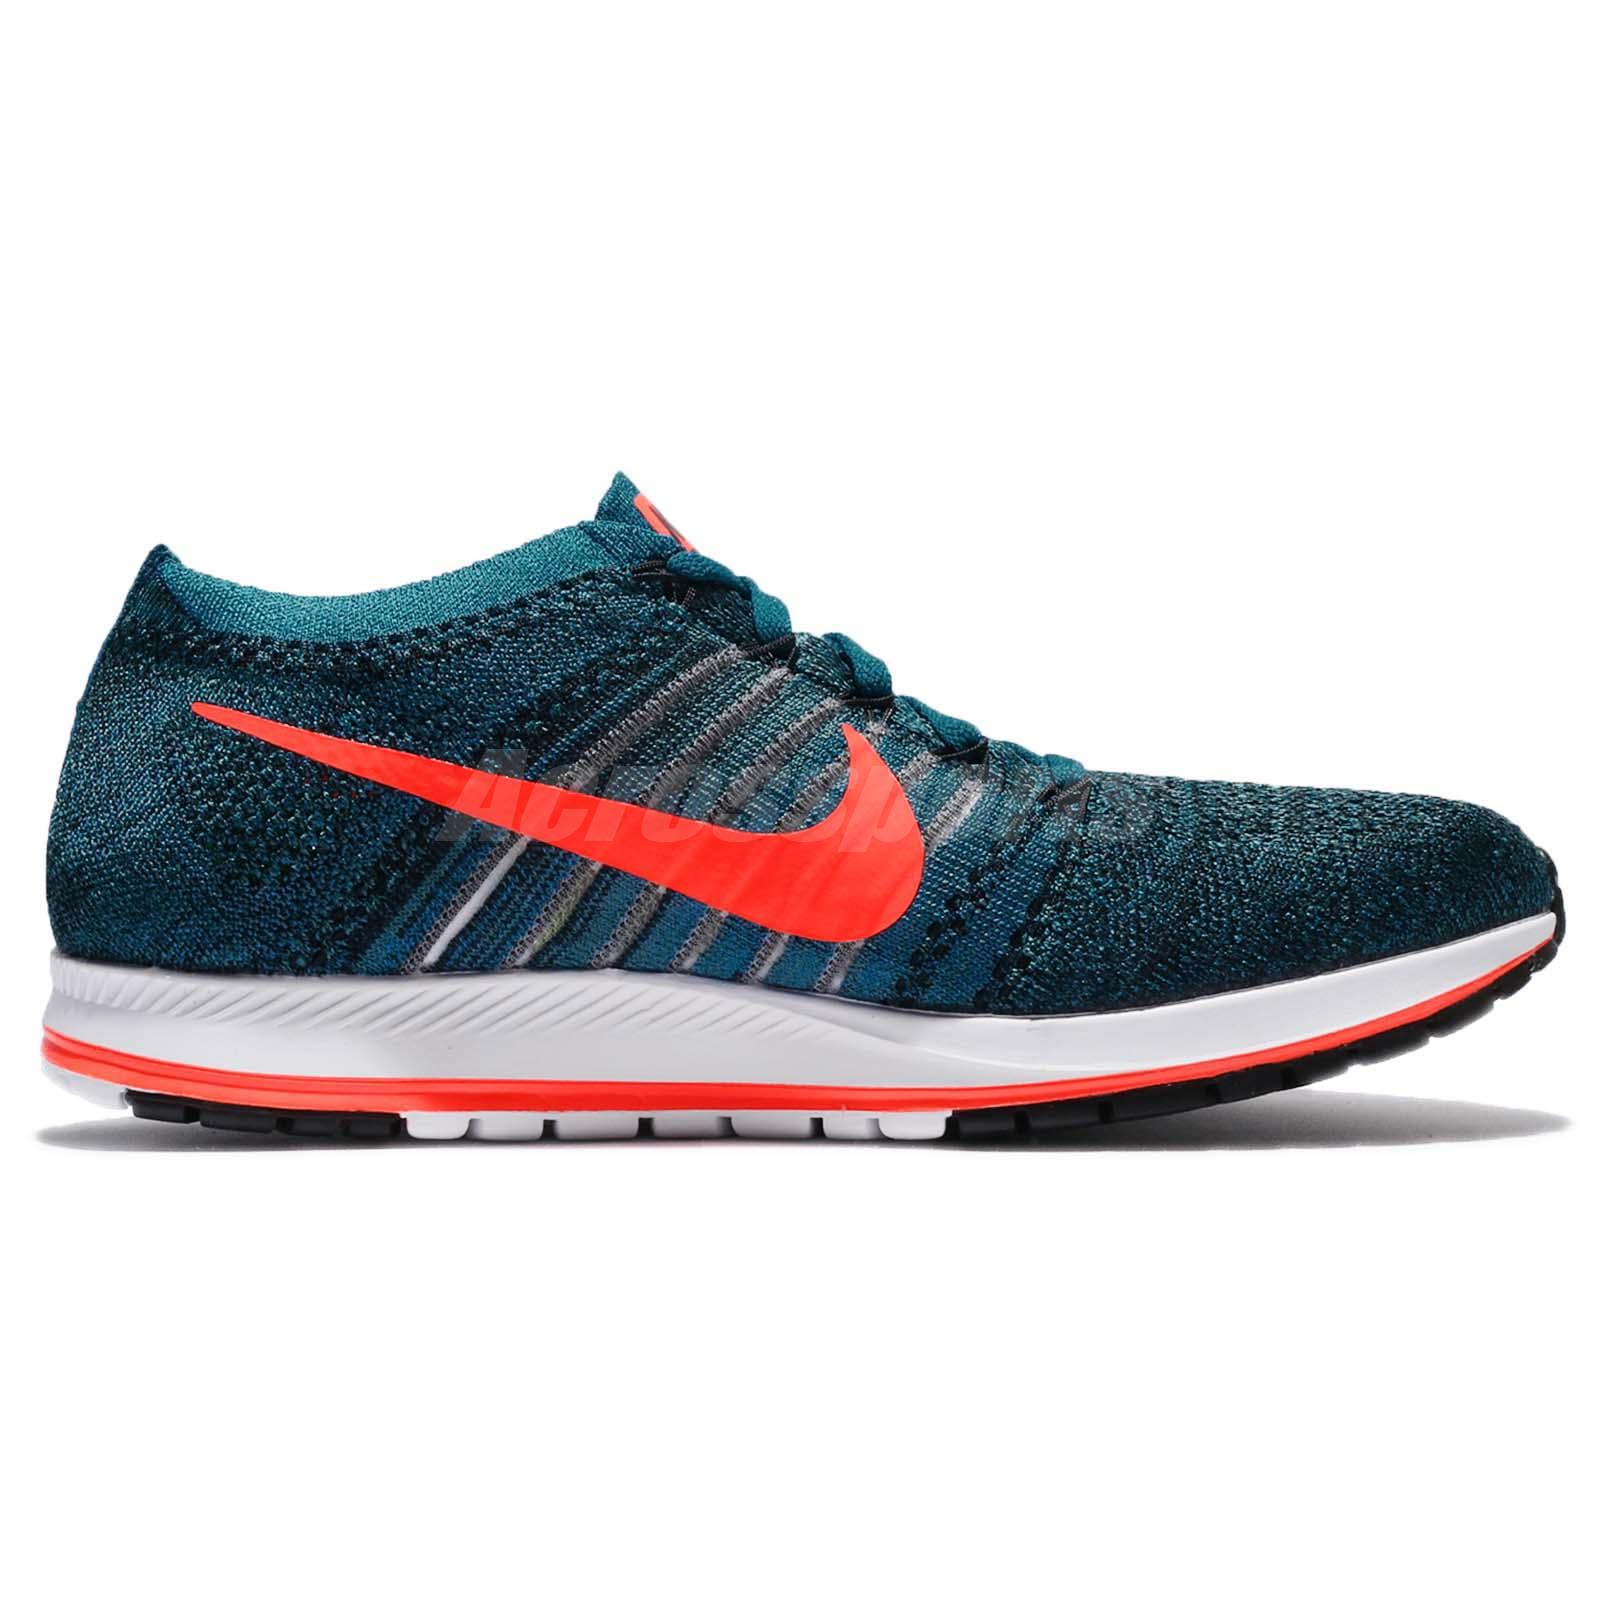 Long Distance Cross Country Shoes Size